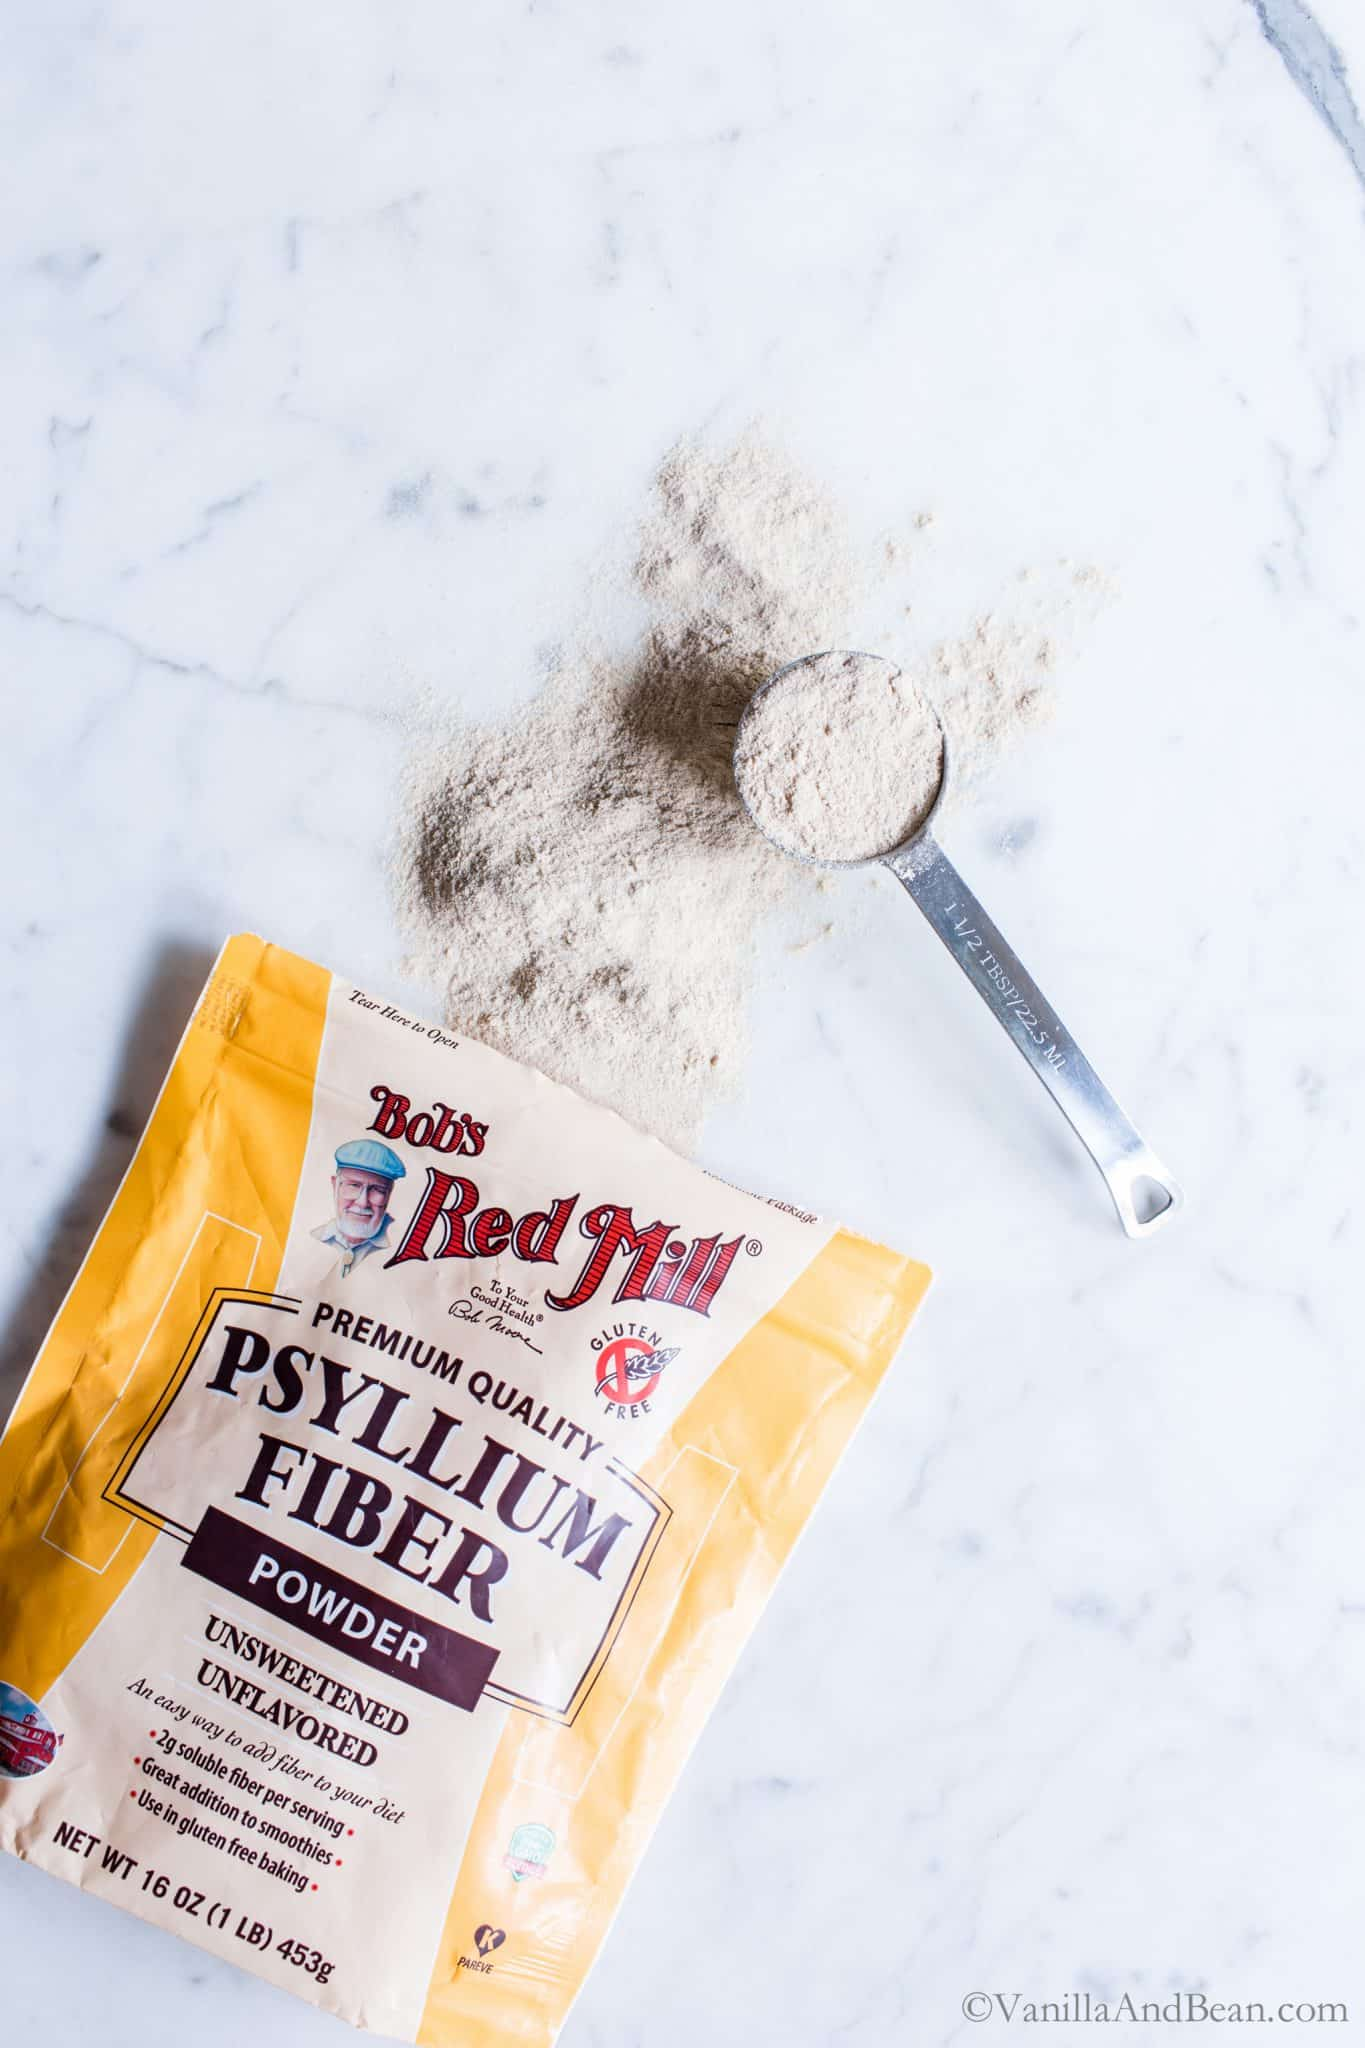 Crispy on the outside, chewy on the inside, this is my go-to Gluten Free Pizza Crust. It's freezer friendly and absolutely delicious! #glutenfreepizzaDough #BobsRedMill (ad)